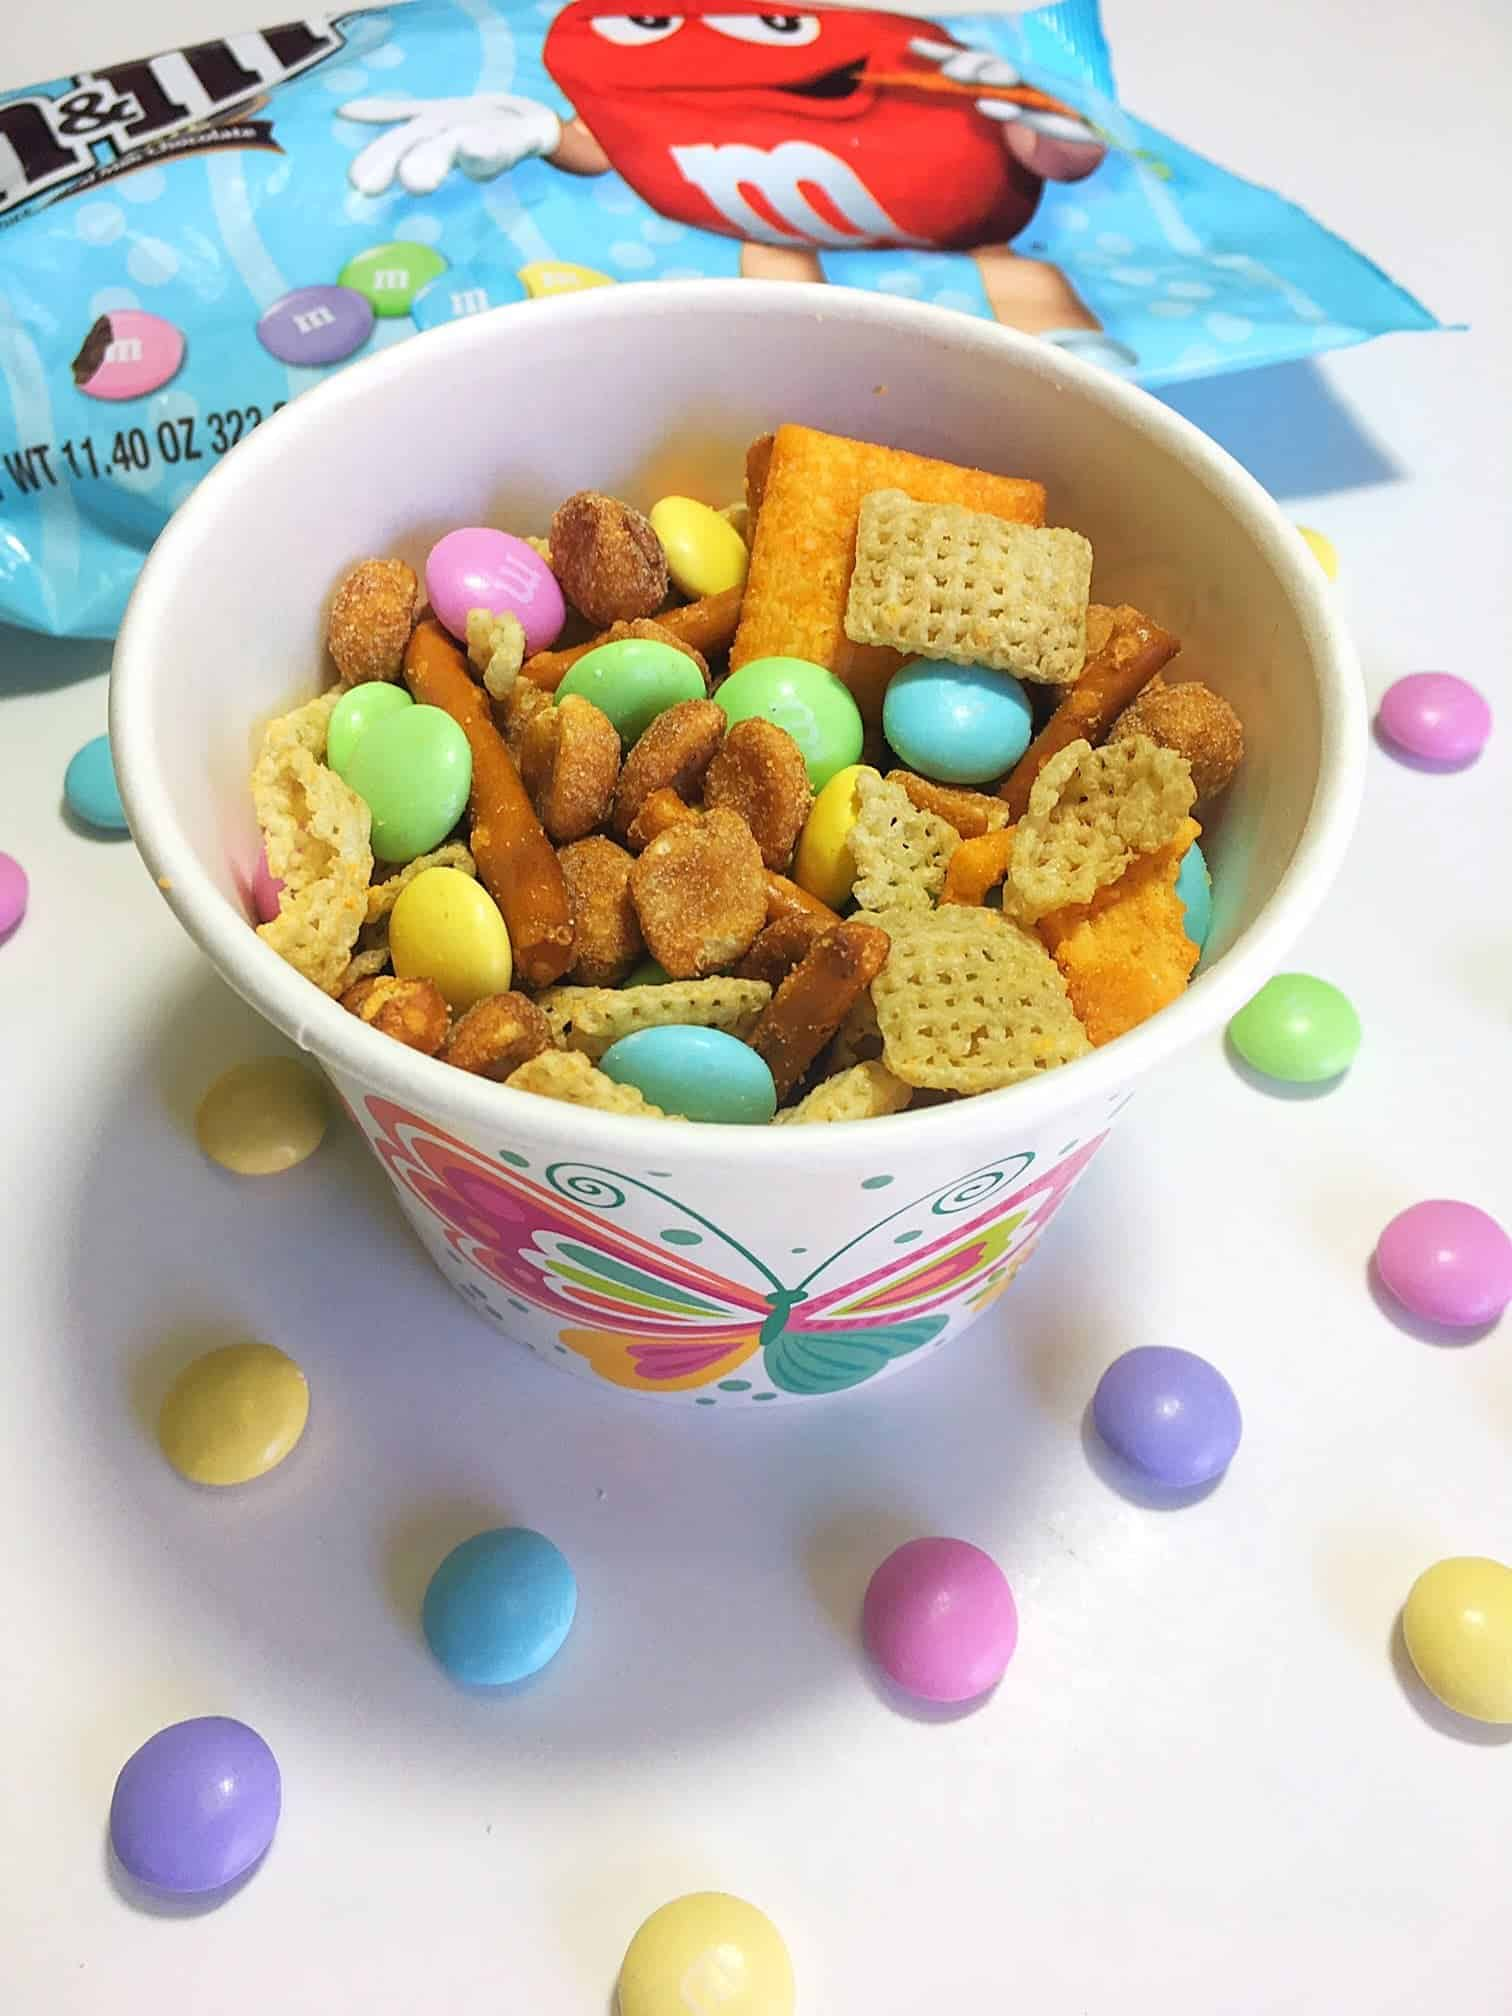 Sweet & Salty Spring Chex Mix-Whether you're craving something sweet or salty, this easy to make Sweet & Salty Spring Chex Mix features both flavors that'll leave you completely satisfied. Plus it only takes 5 minutes to whip together and is perfect for serving to family and friends!